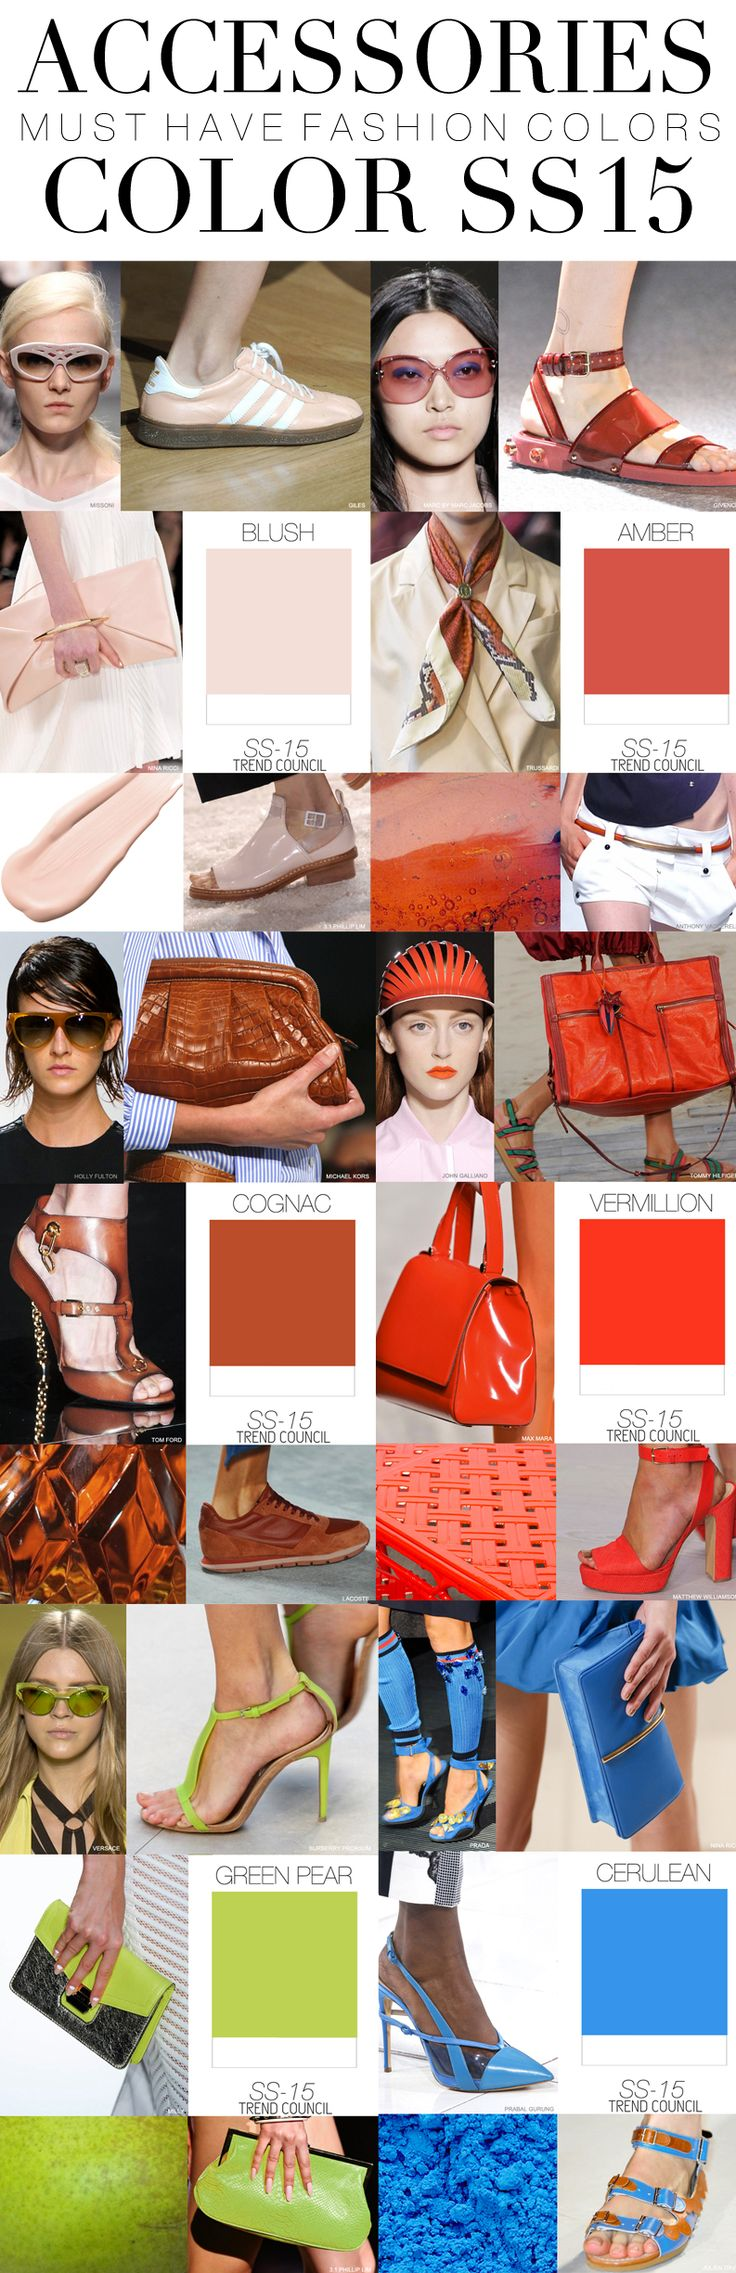 colors for accessories ss 2015 love.thegoodbags.com Michael Kors Outlet !Most bags are under $61.99 !THIS OH MY GOD ~